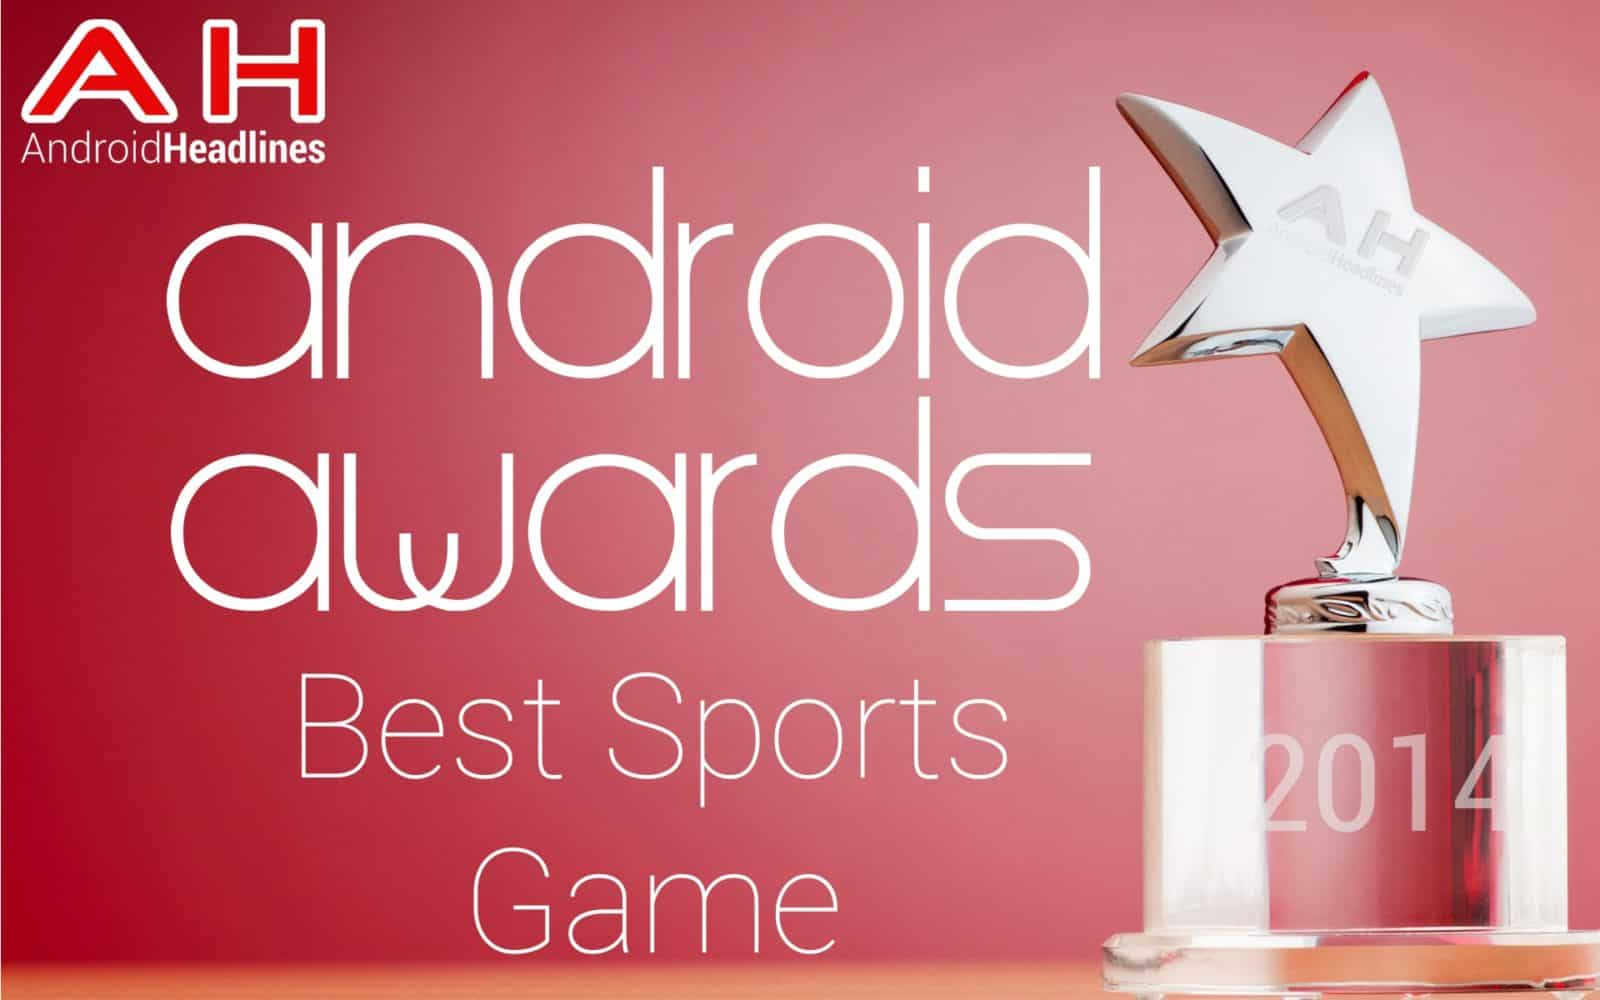 AH Awards 2015 - Best Sports Game Android